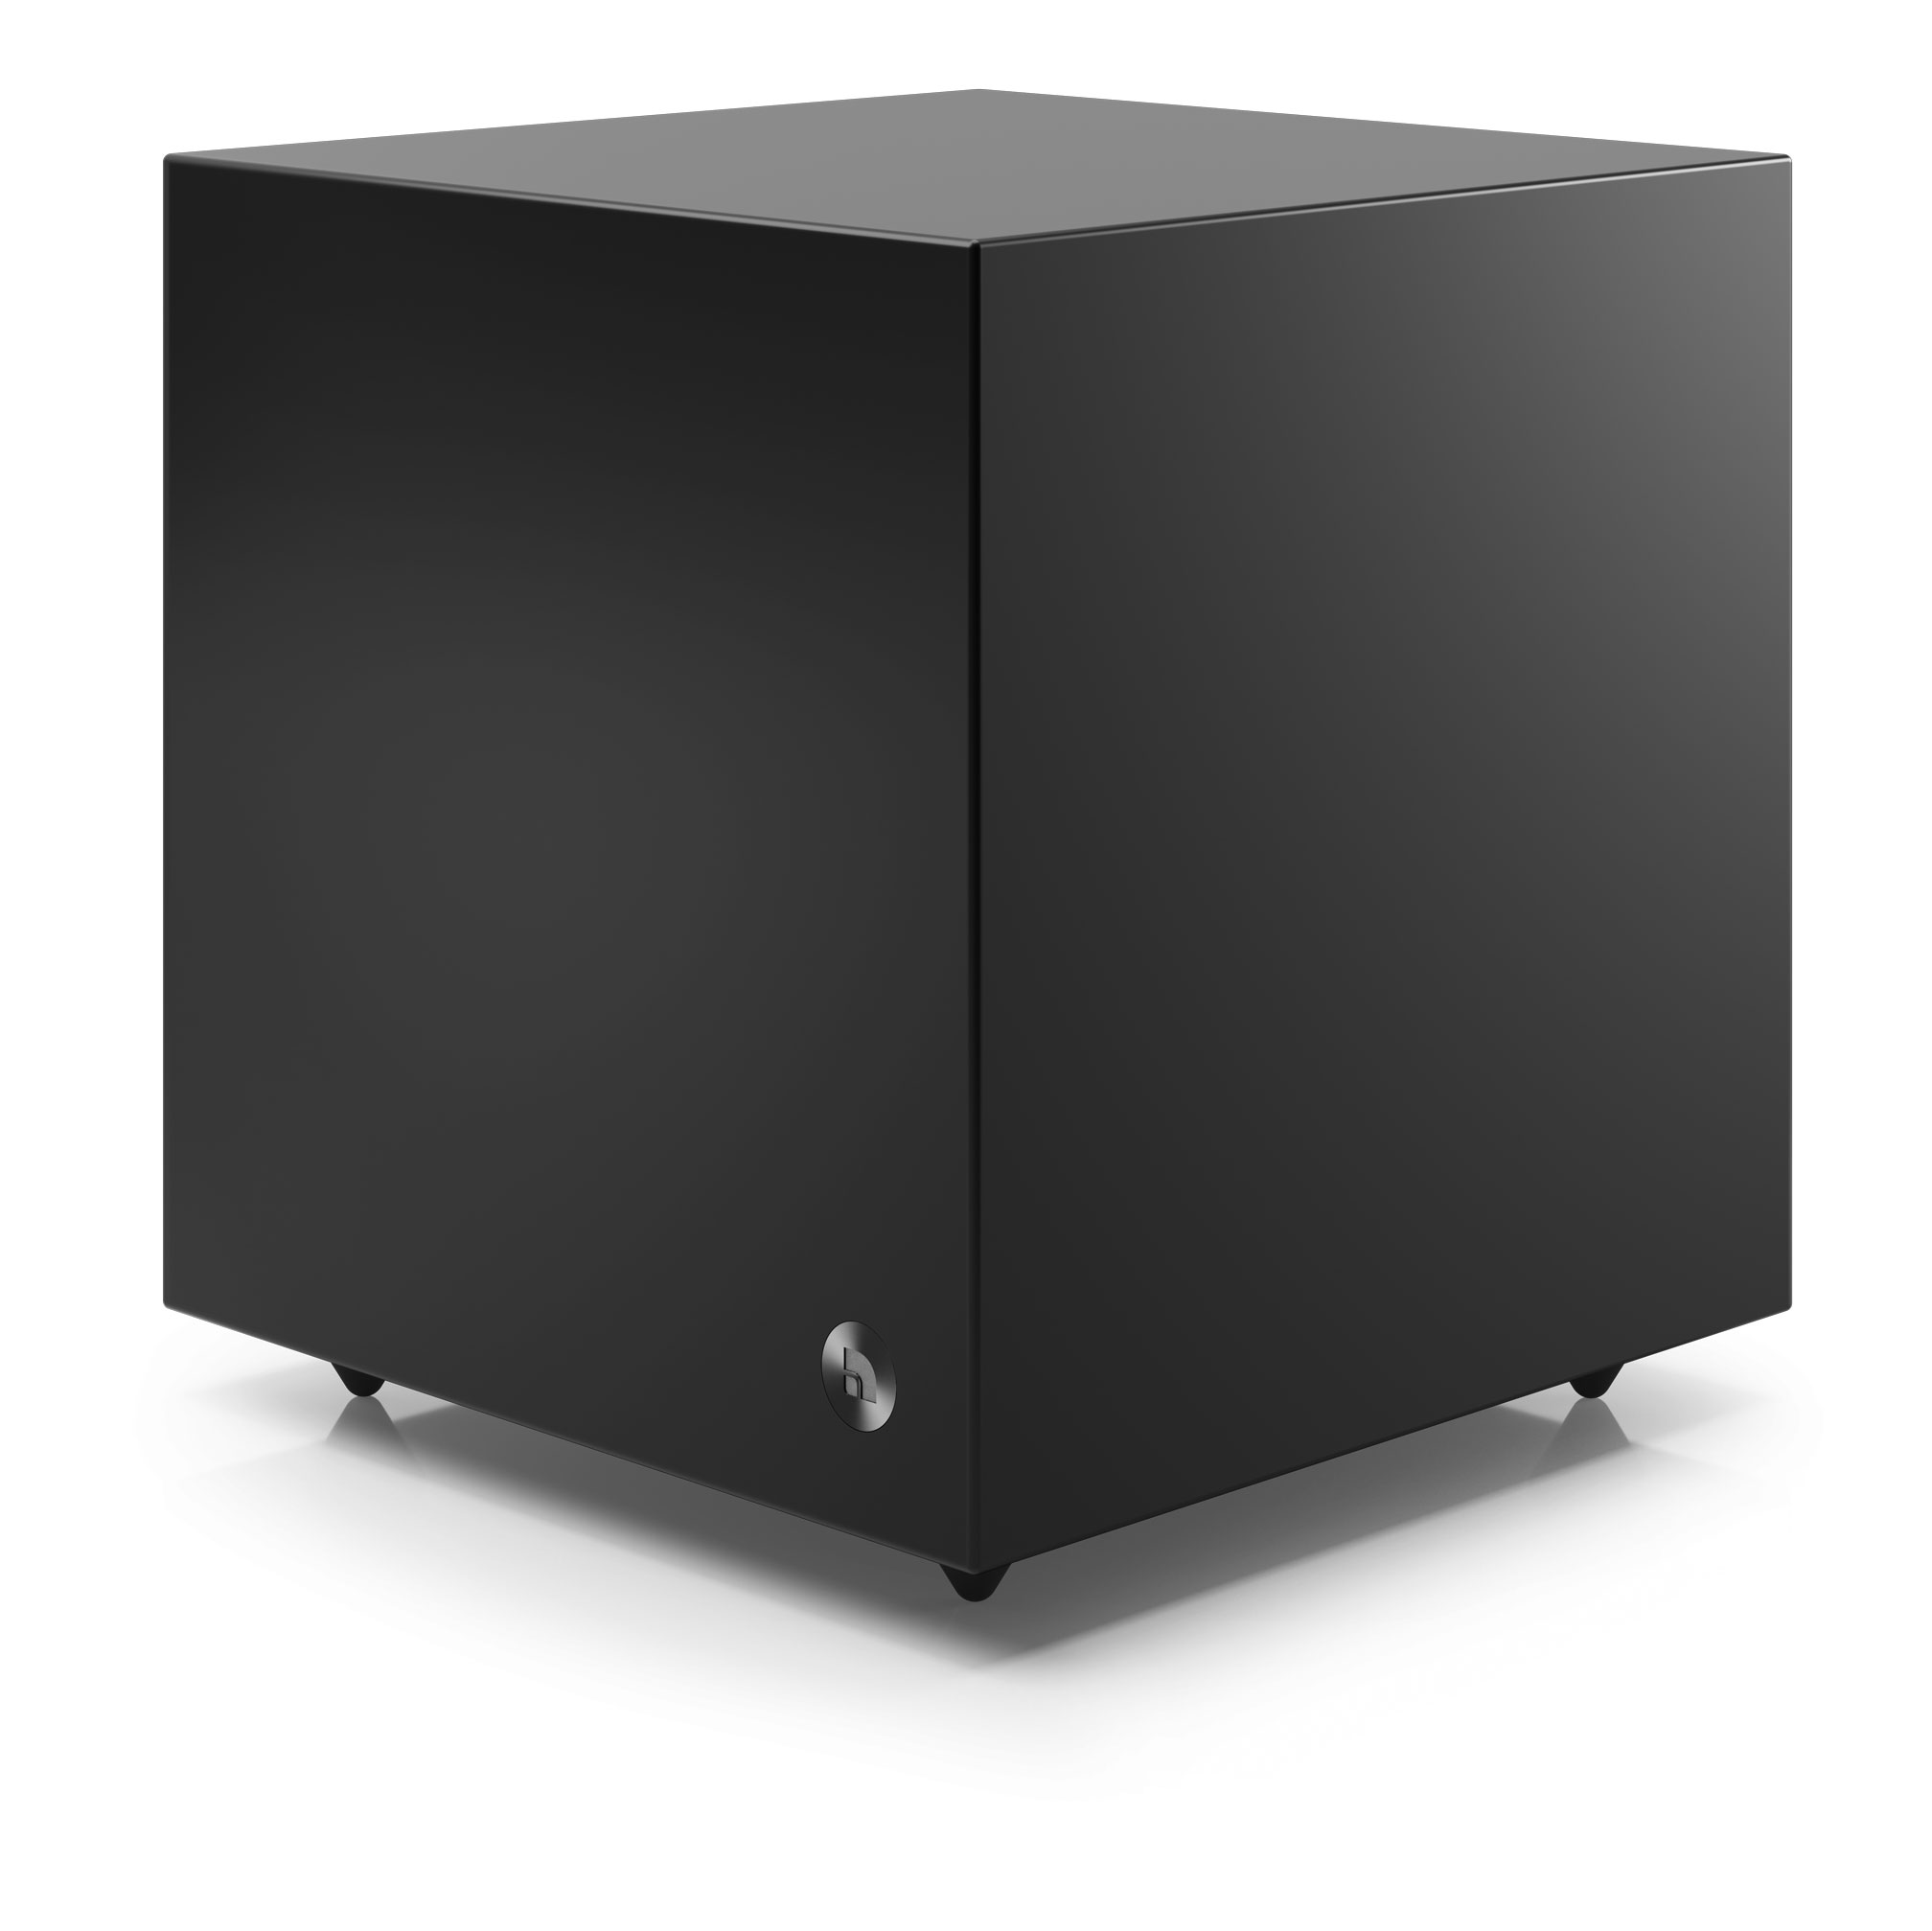 Active subwoofer SW 5 black angle1 AudioPro